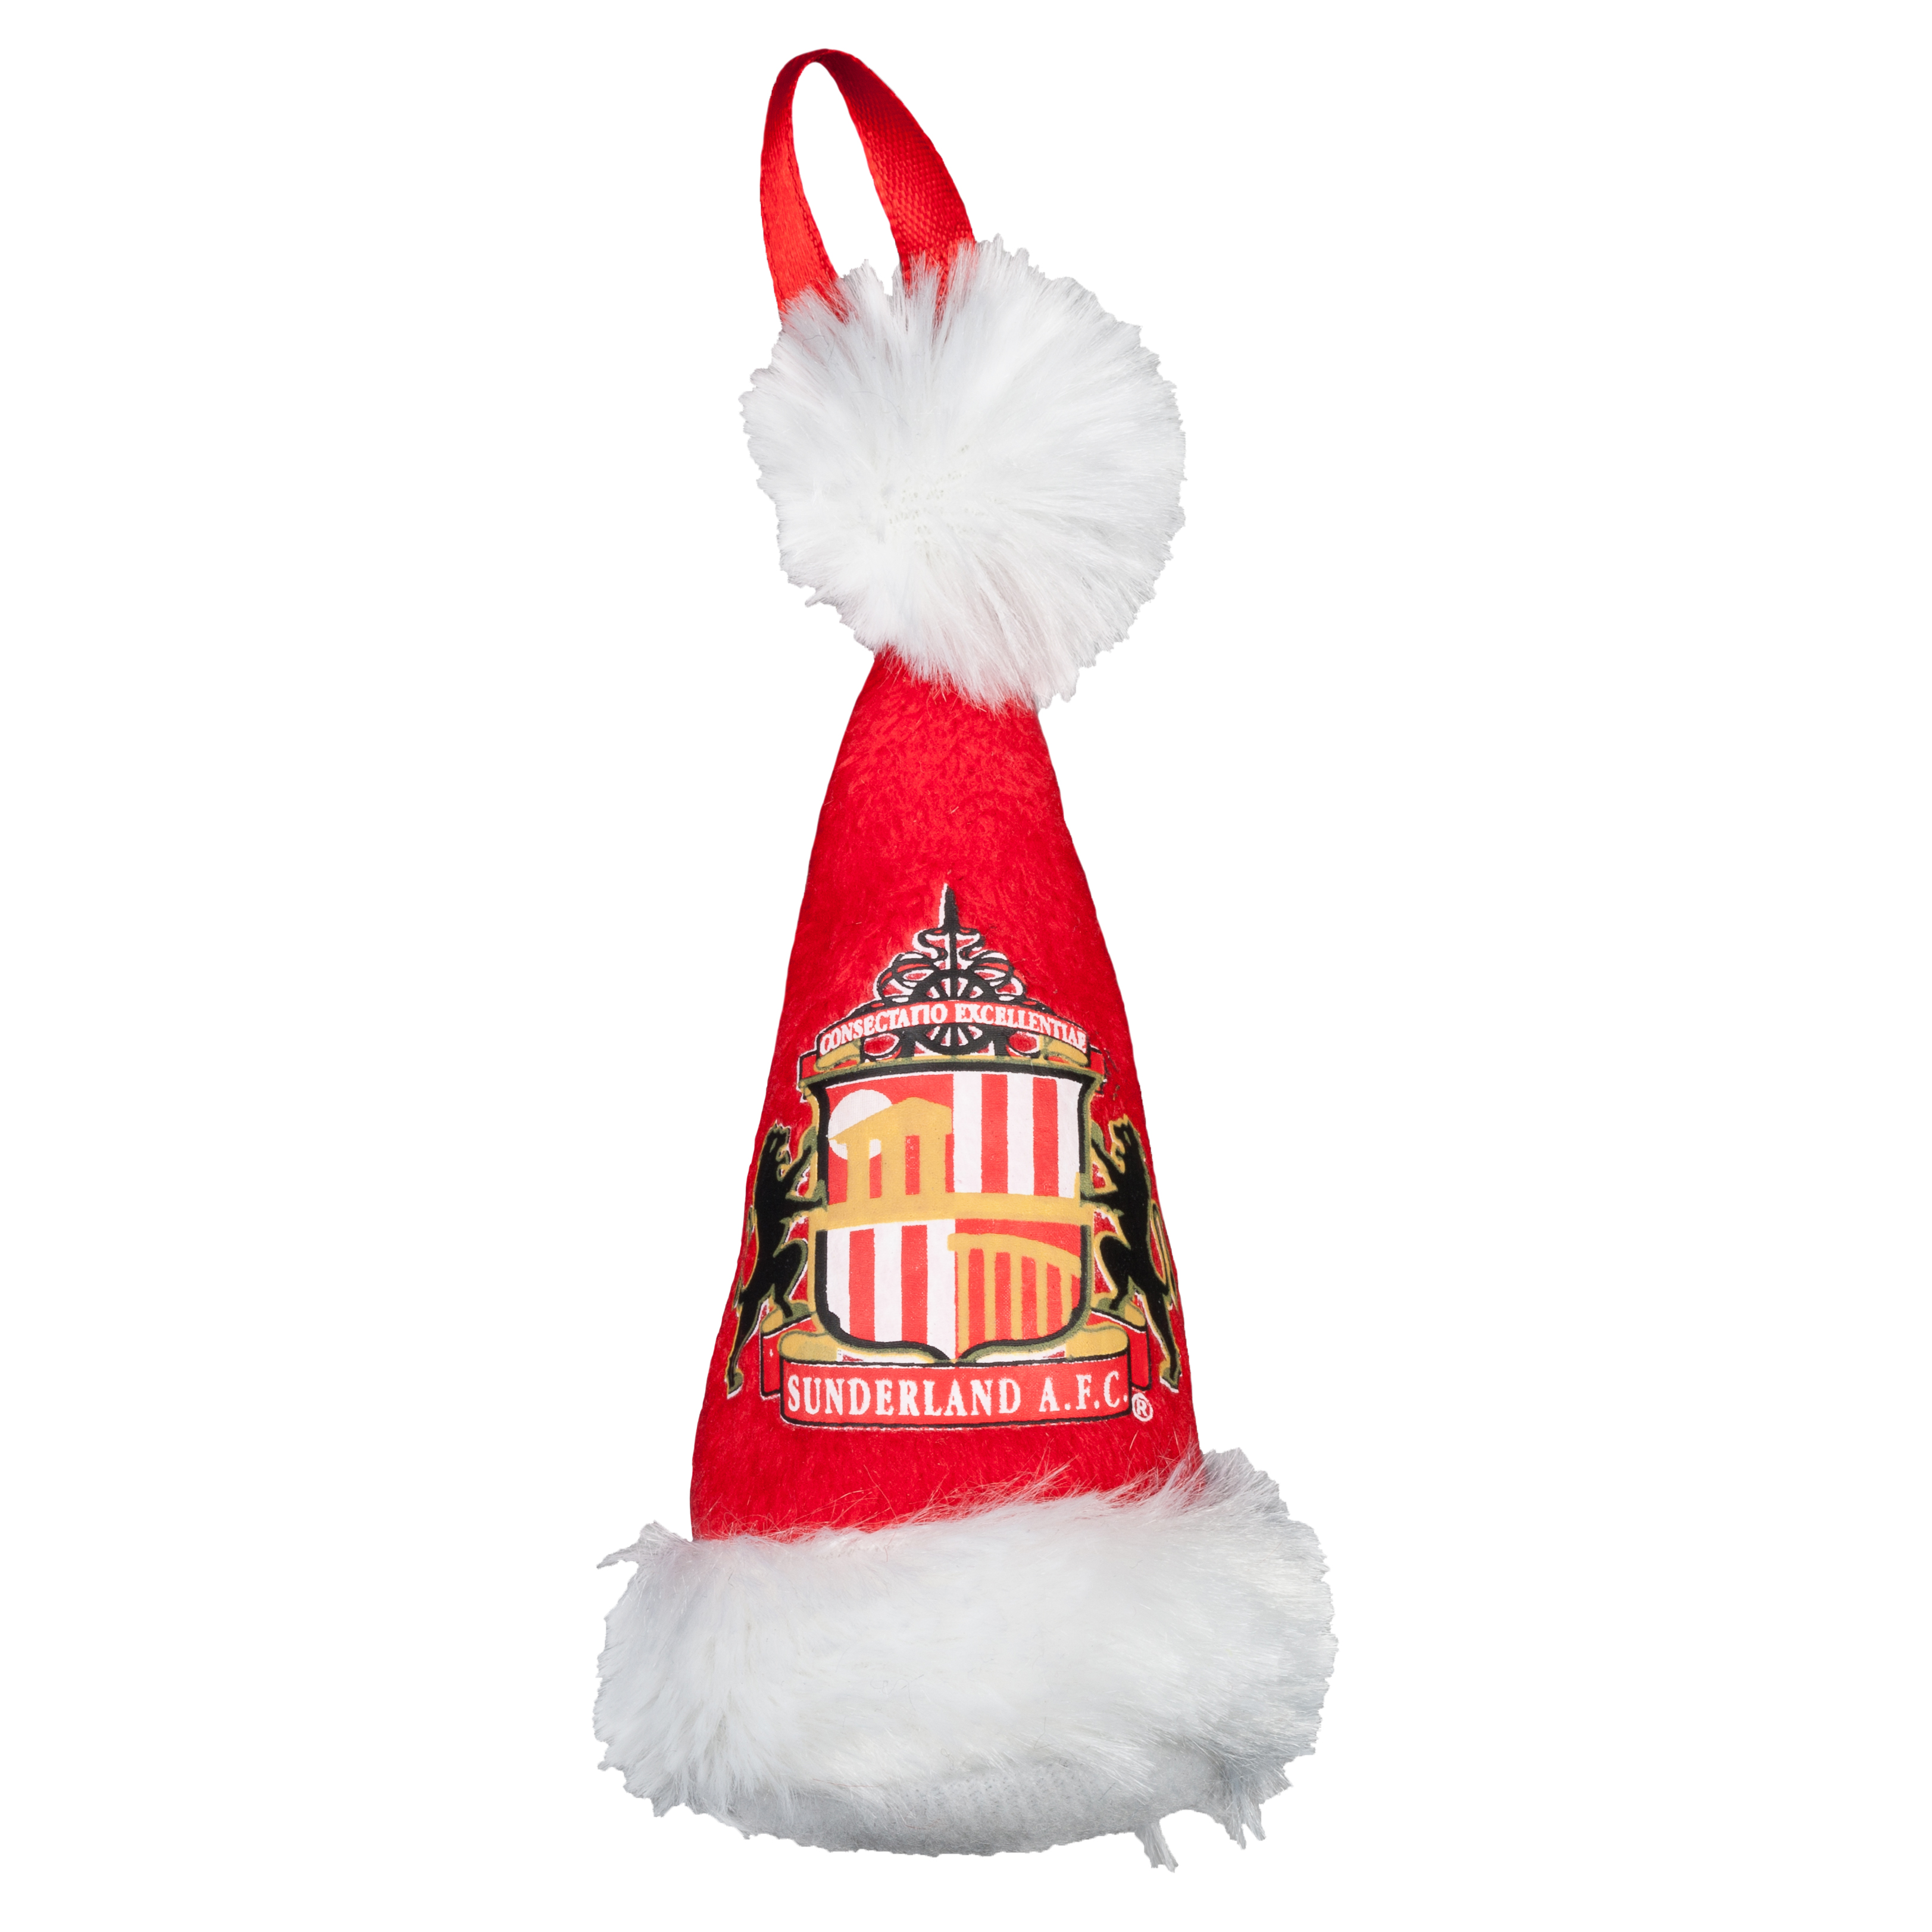 Sunderland Plush Santa Hat Ornament